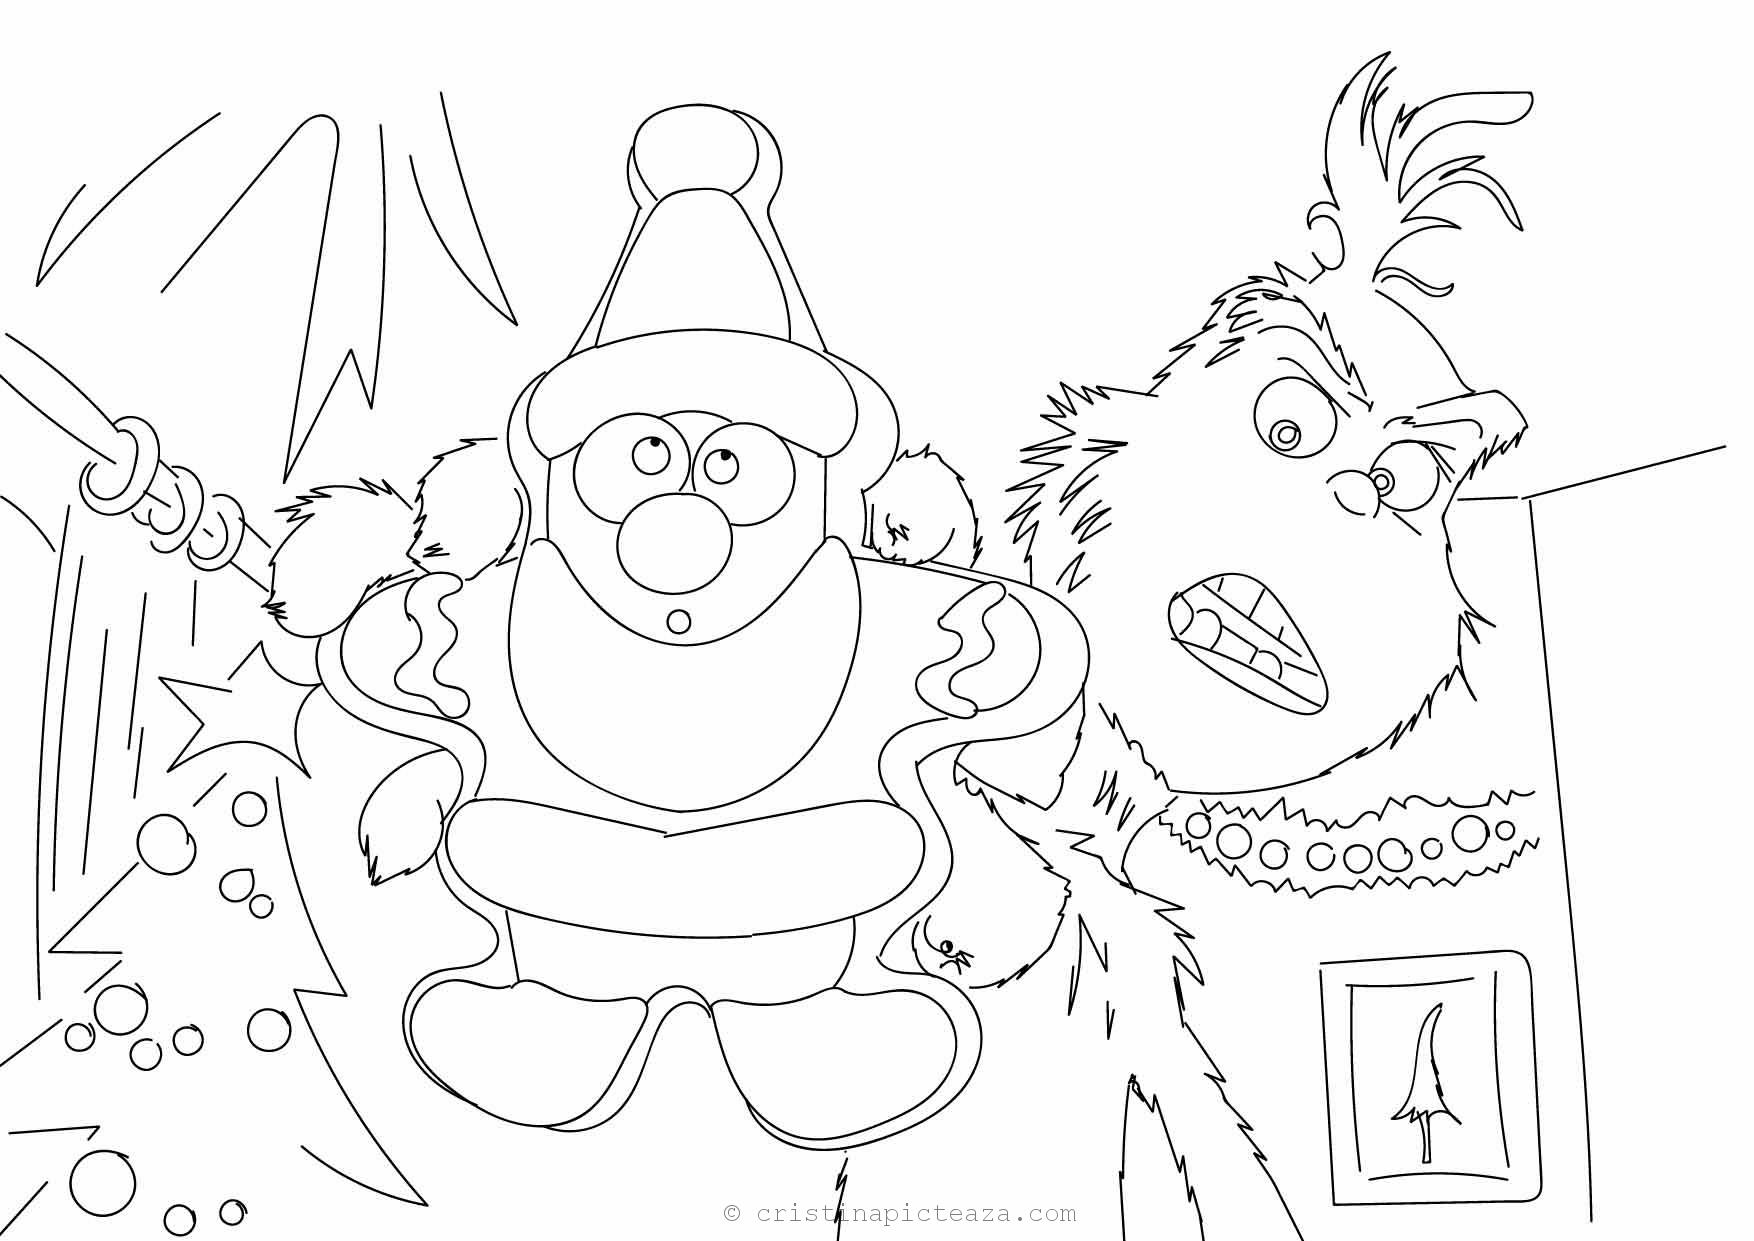 The Grinch Coloring Pages Drawings Sheets With Grinch